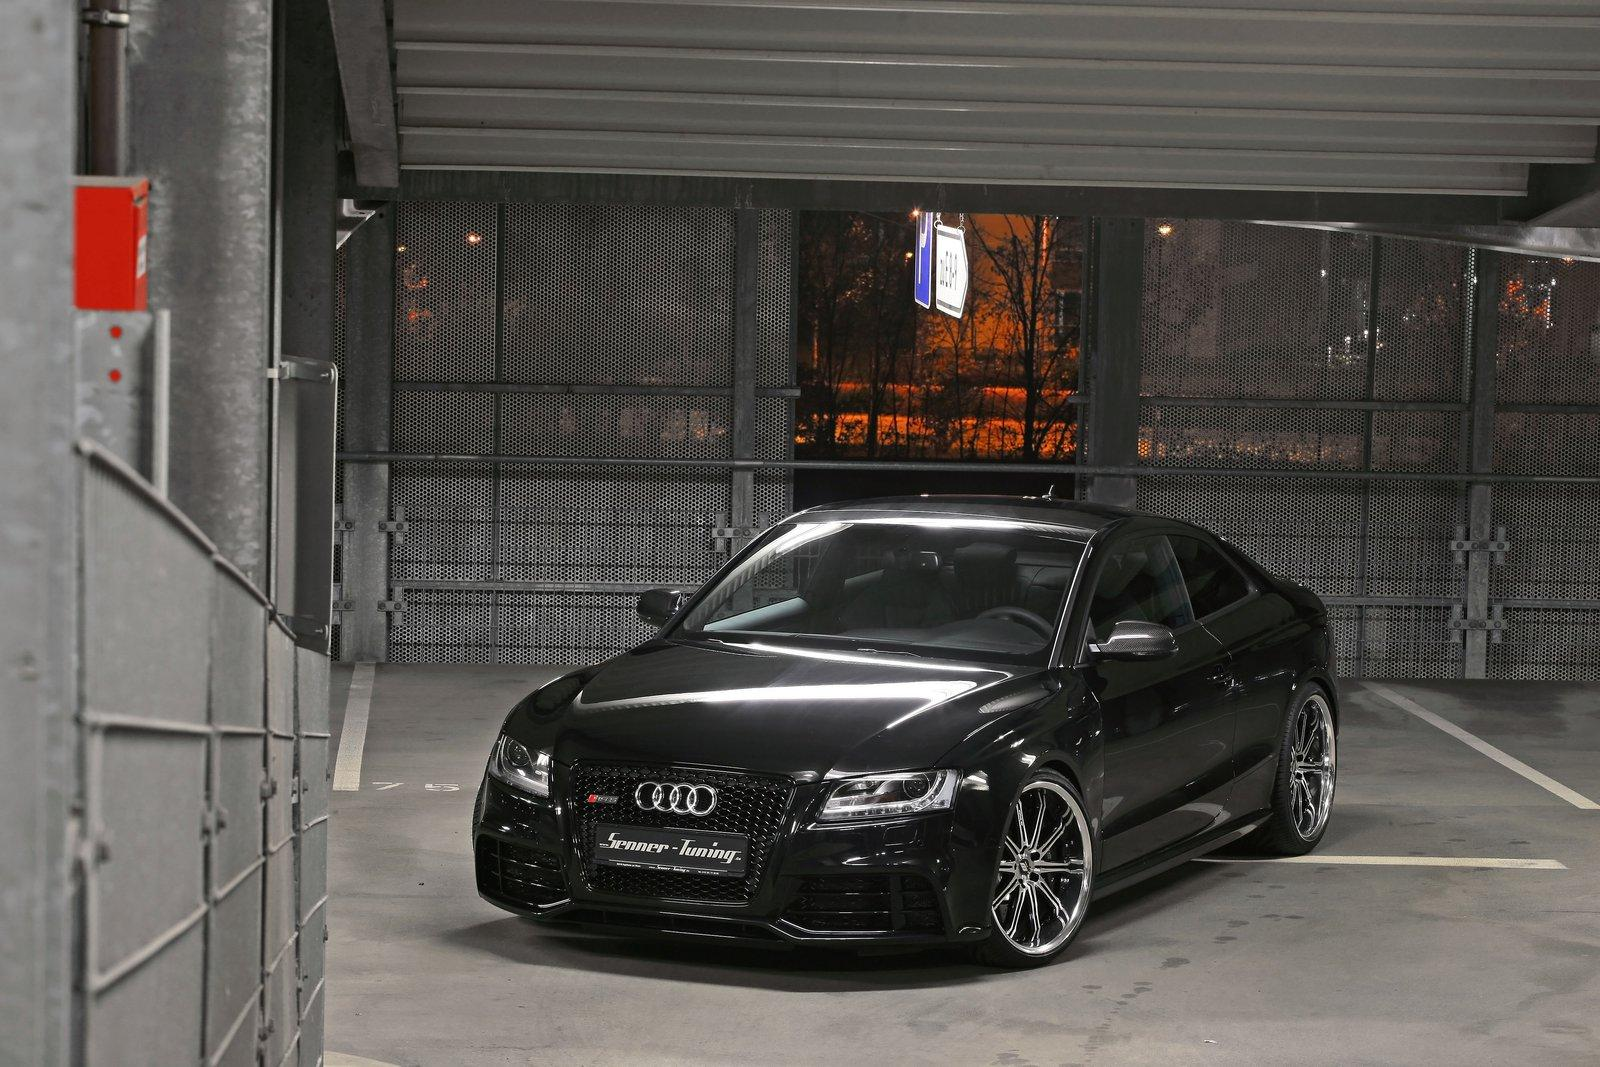 500hp Audi RS5 by Senner